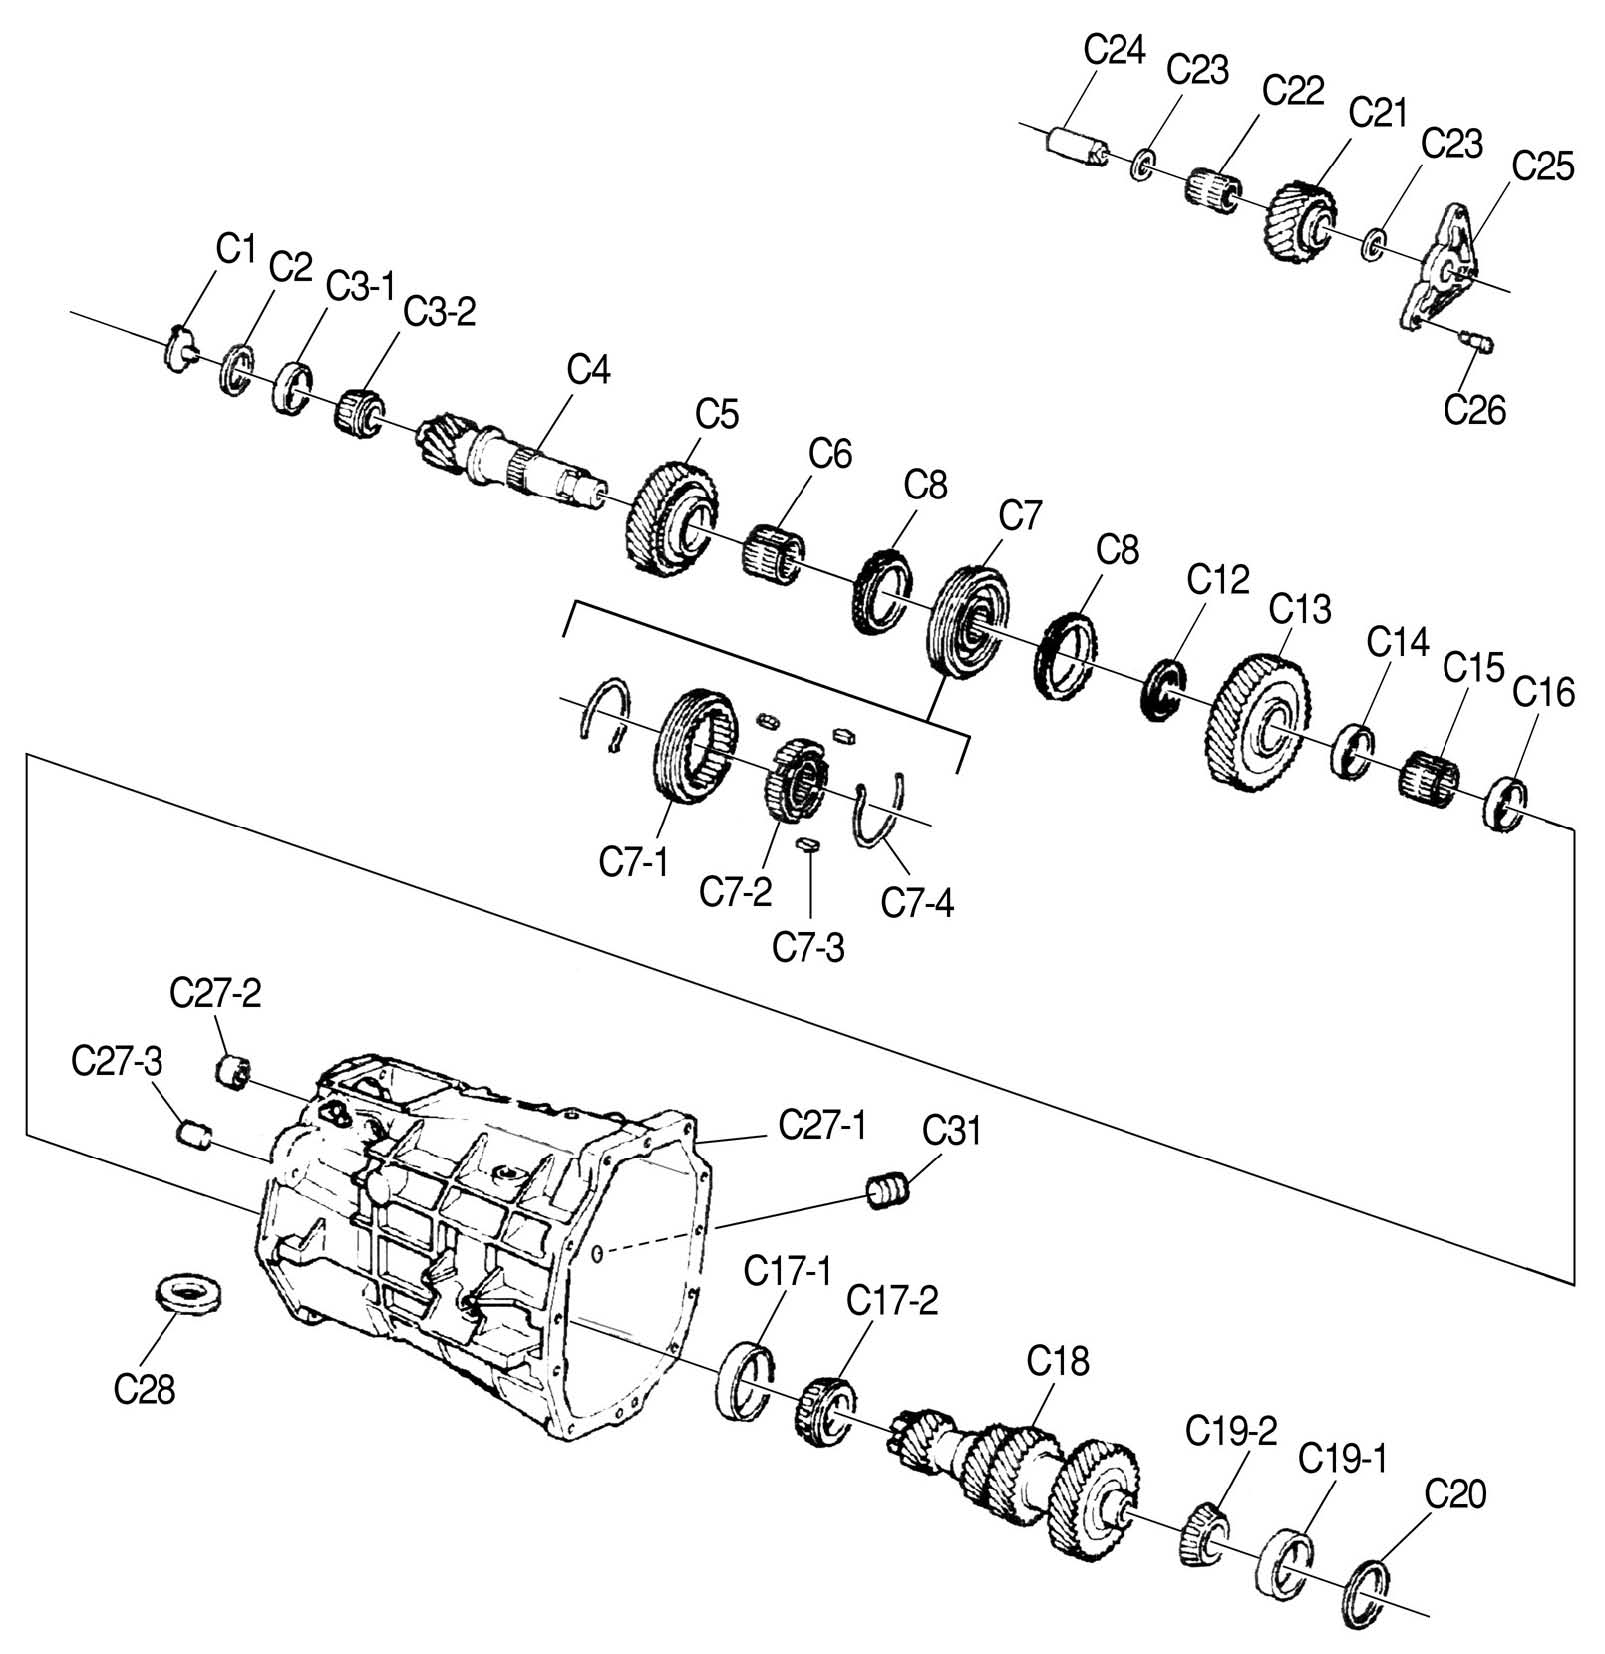 t56 manual transmission diagram t56 free engine image for user manual